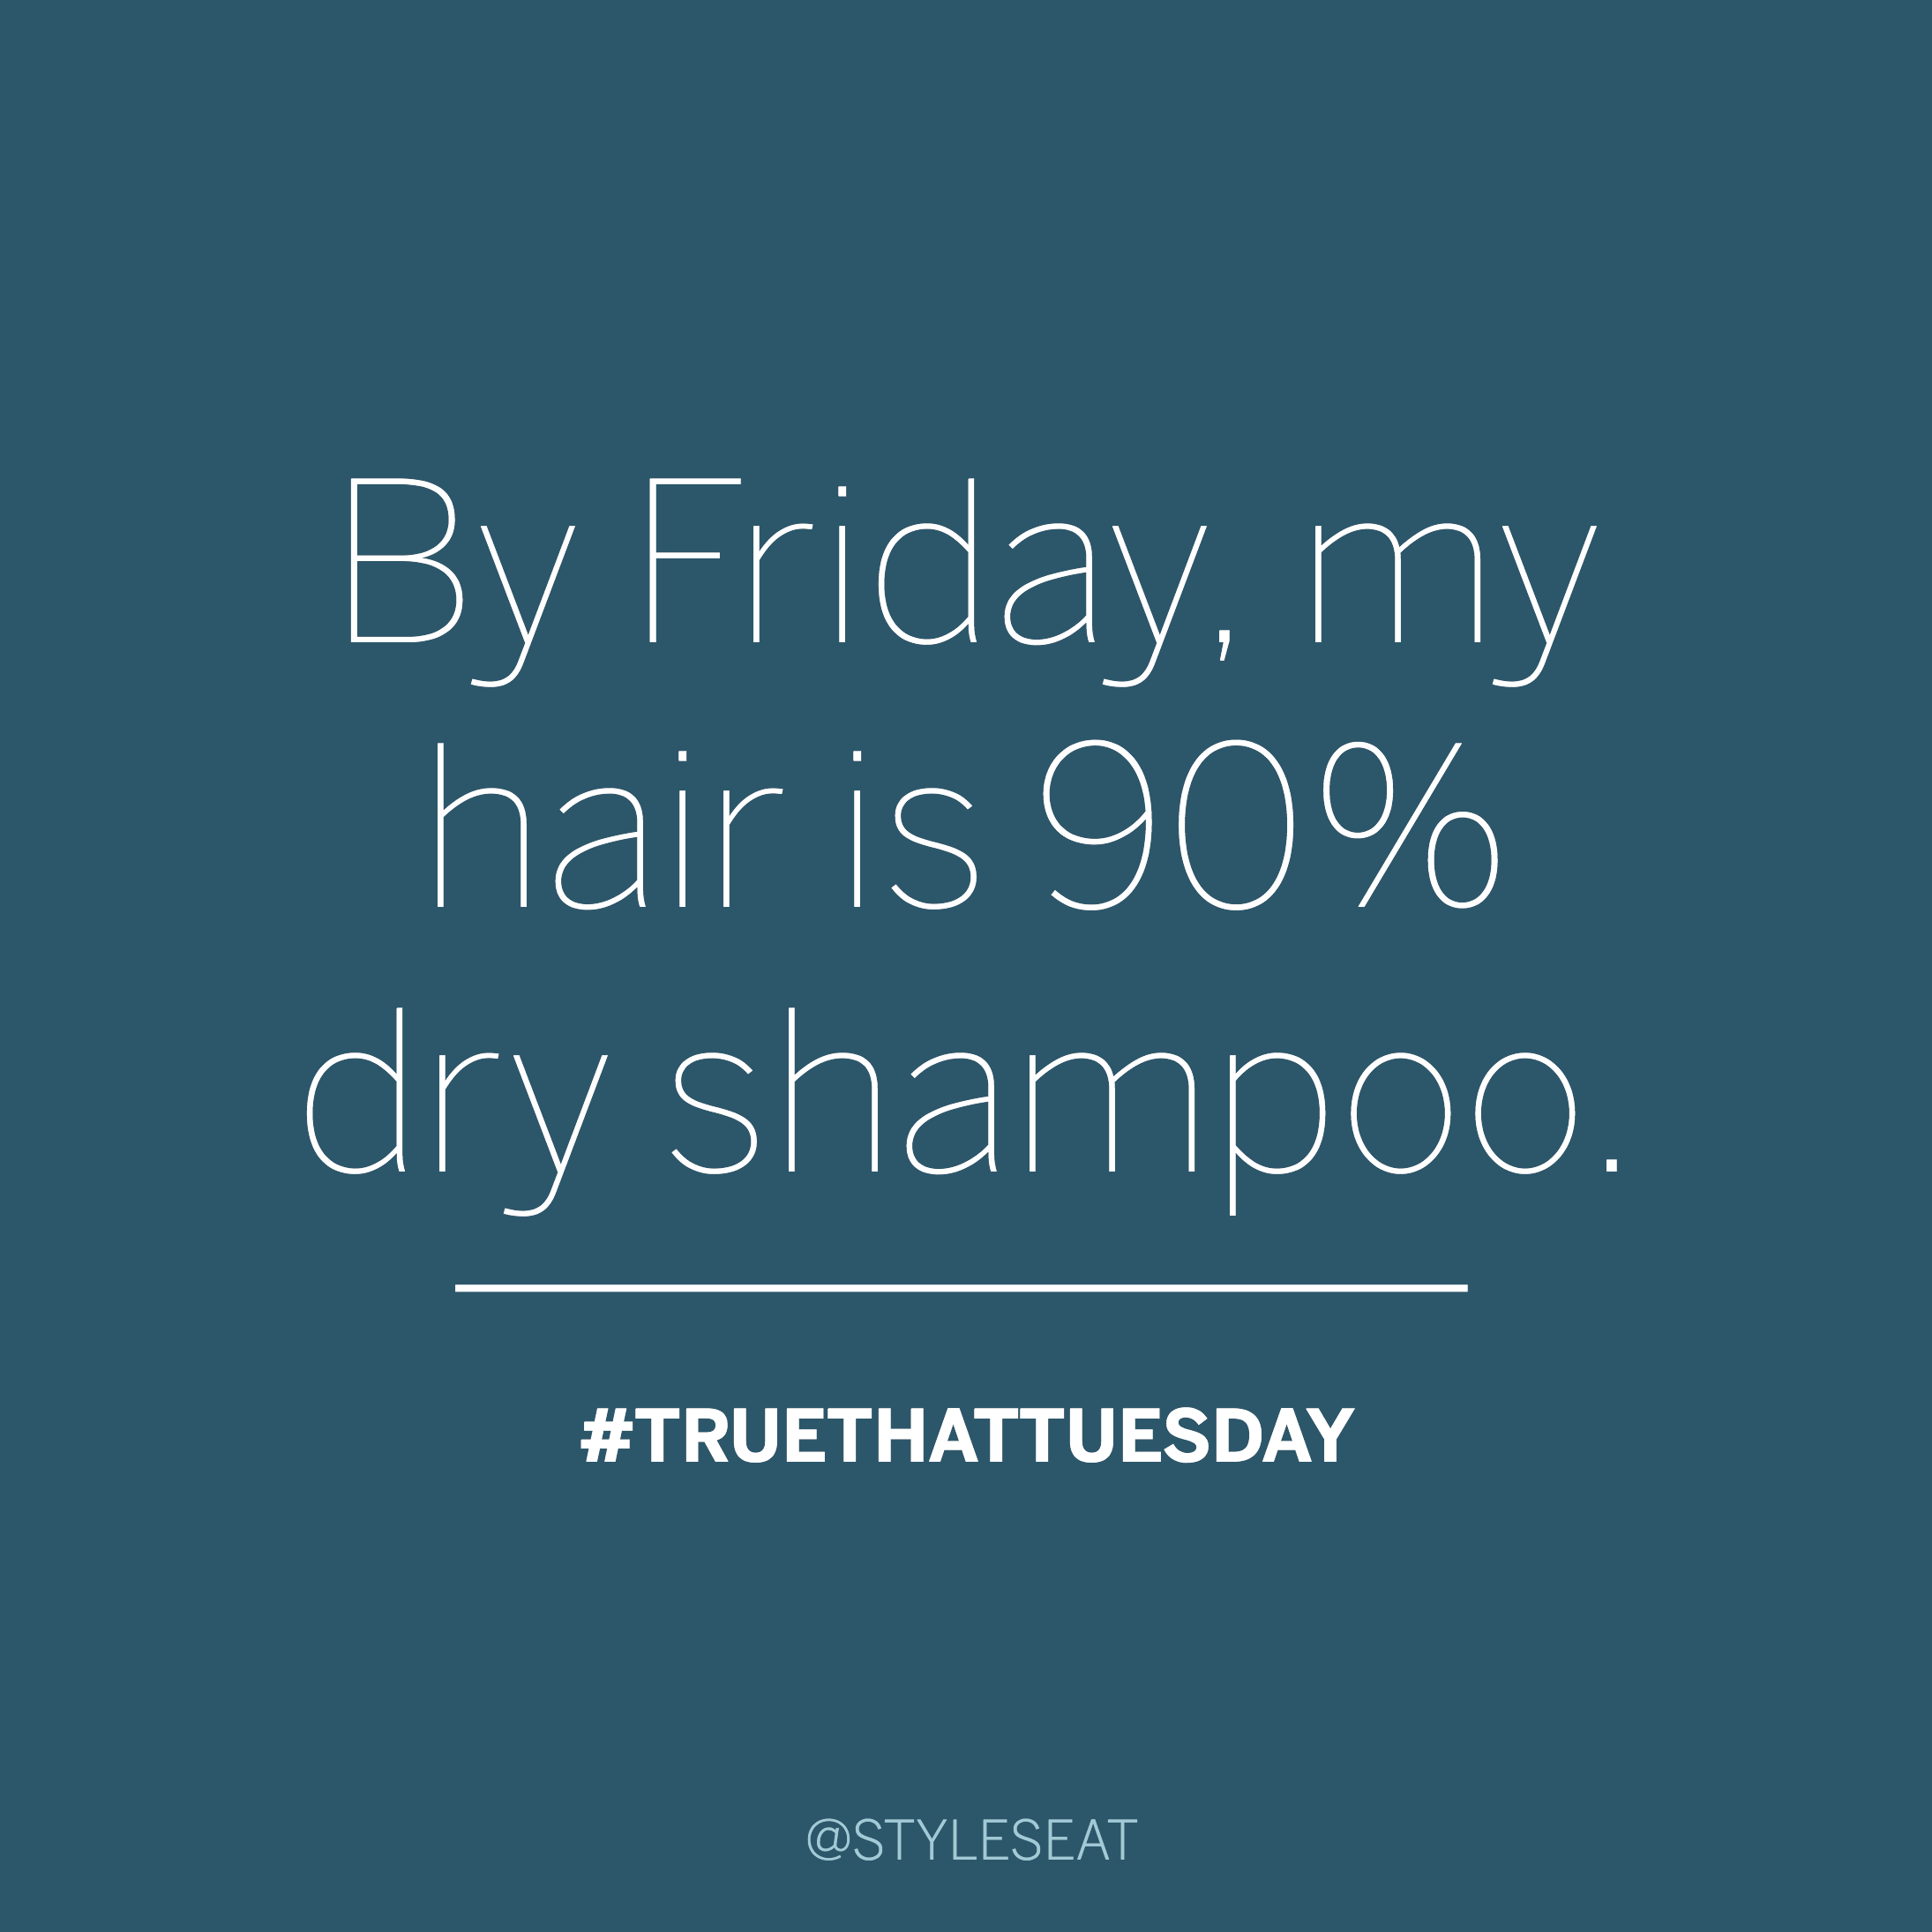 Behindthechair com quotes - Dry Shampoo Truths Funny Quotes